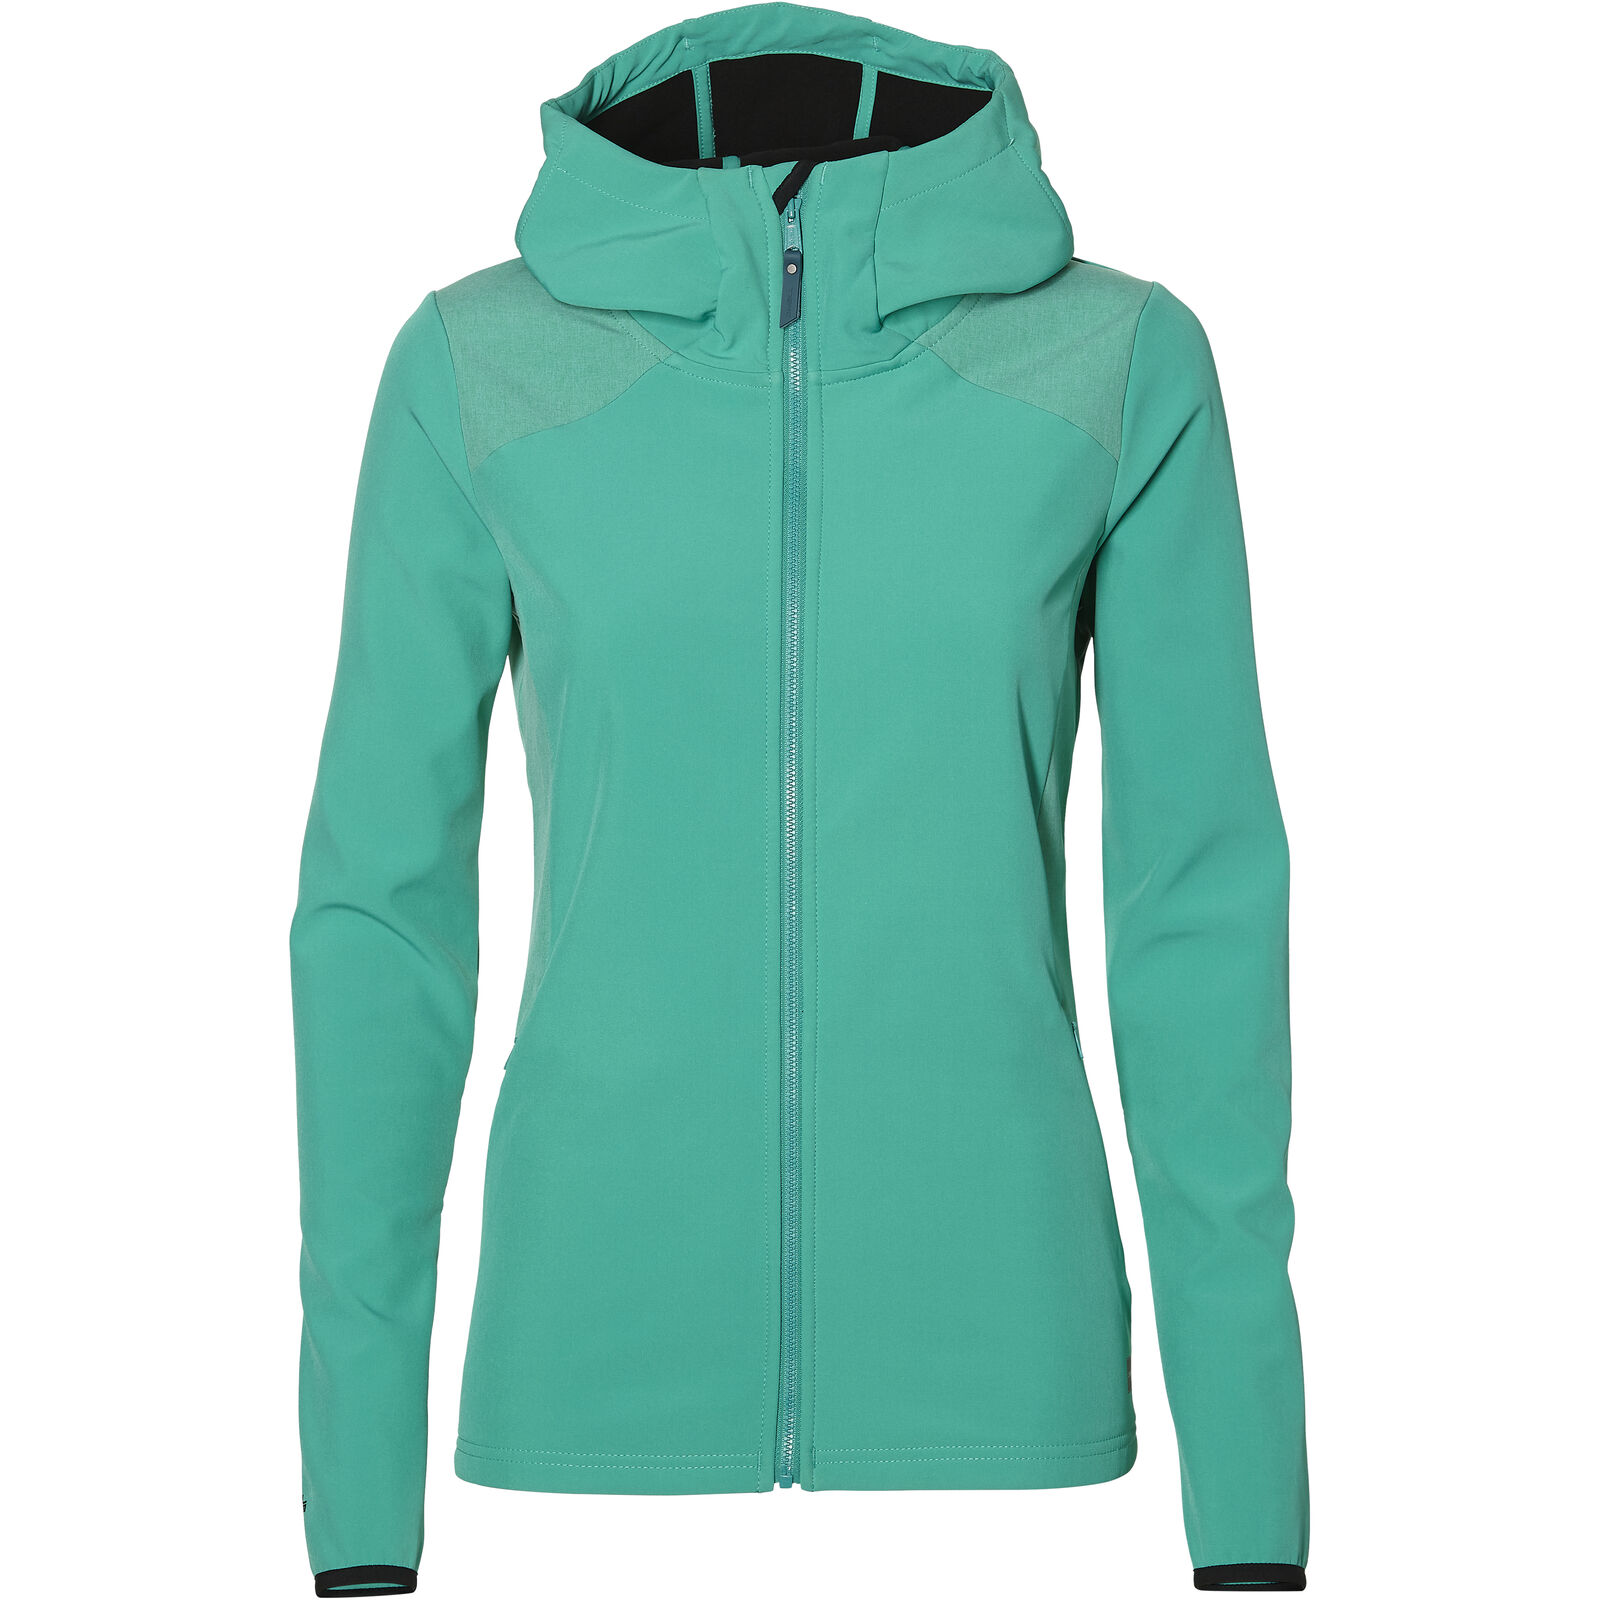 O'Neill Chaqueta Softshell Pw Solo de Tacto Suave green Impermeable